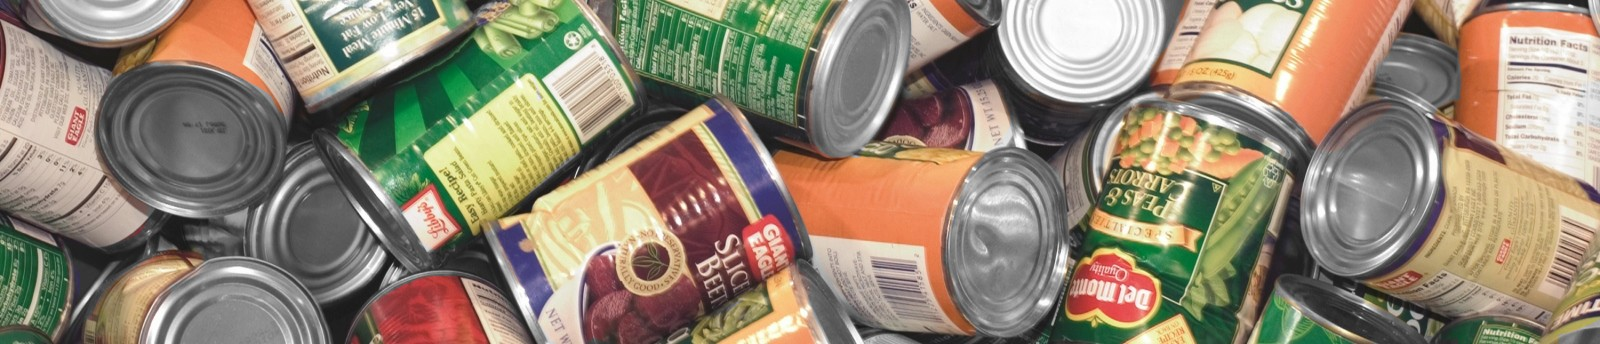 Miami Metro Ranks Second Only To Detroit In U.S. Food Stamp Use